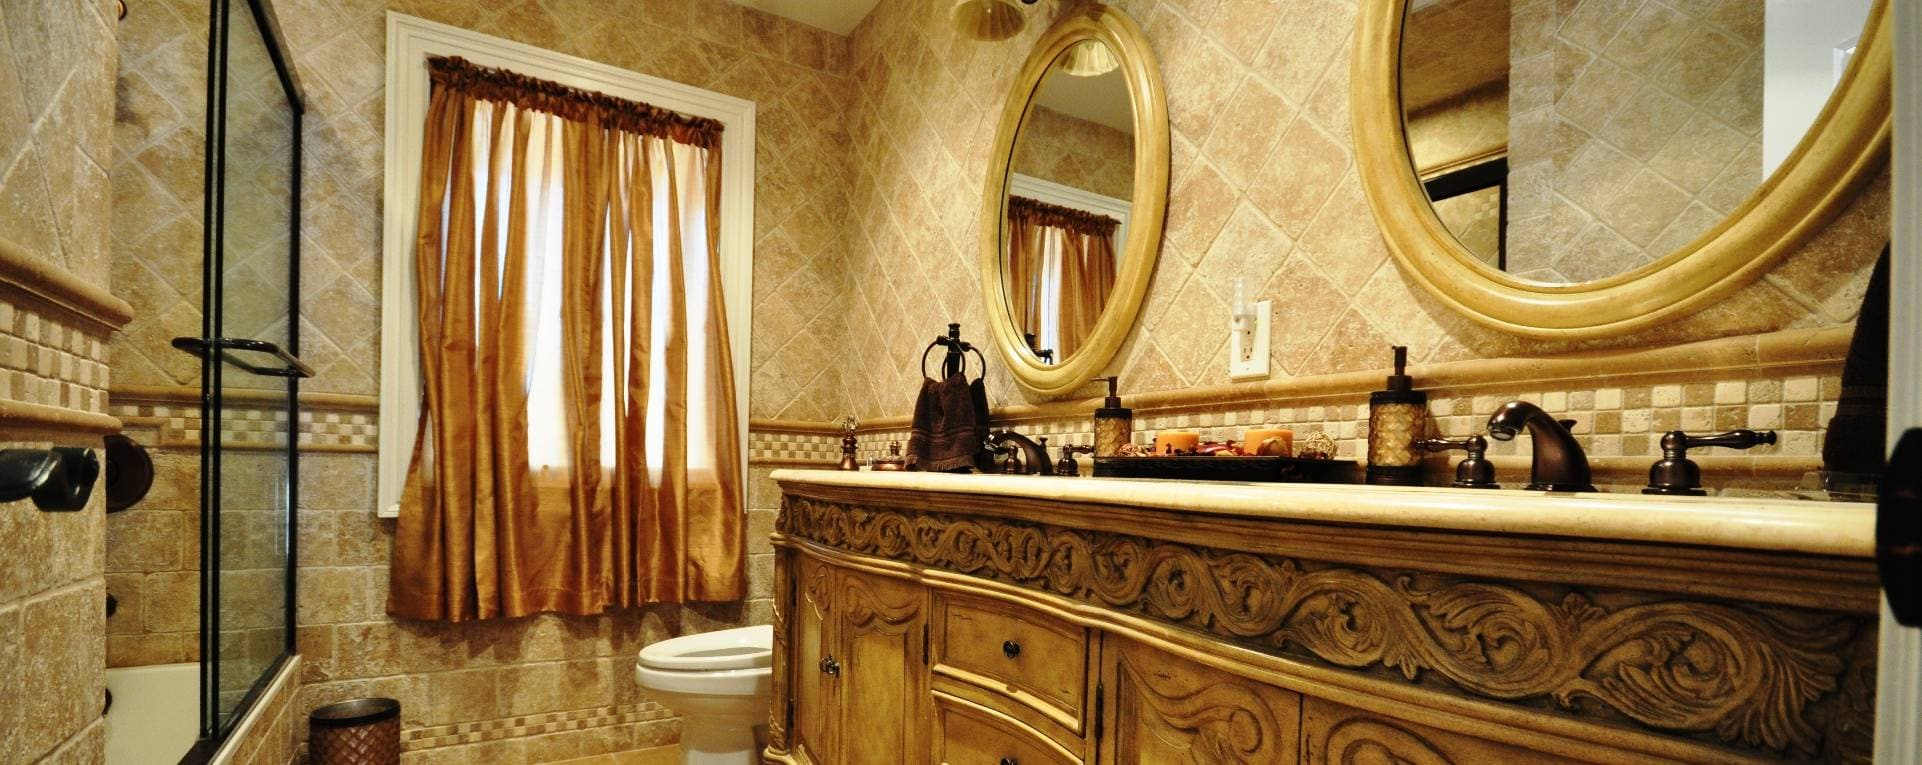 Long Island Bathroom Remodeling Bathrooms Design Renovation NY - Bathroom remodel long island ny